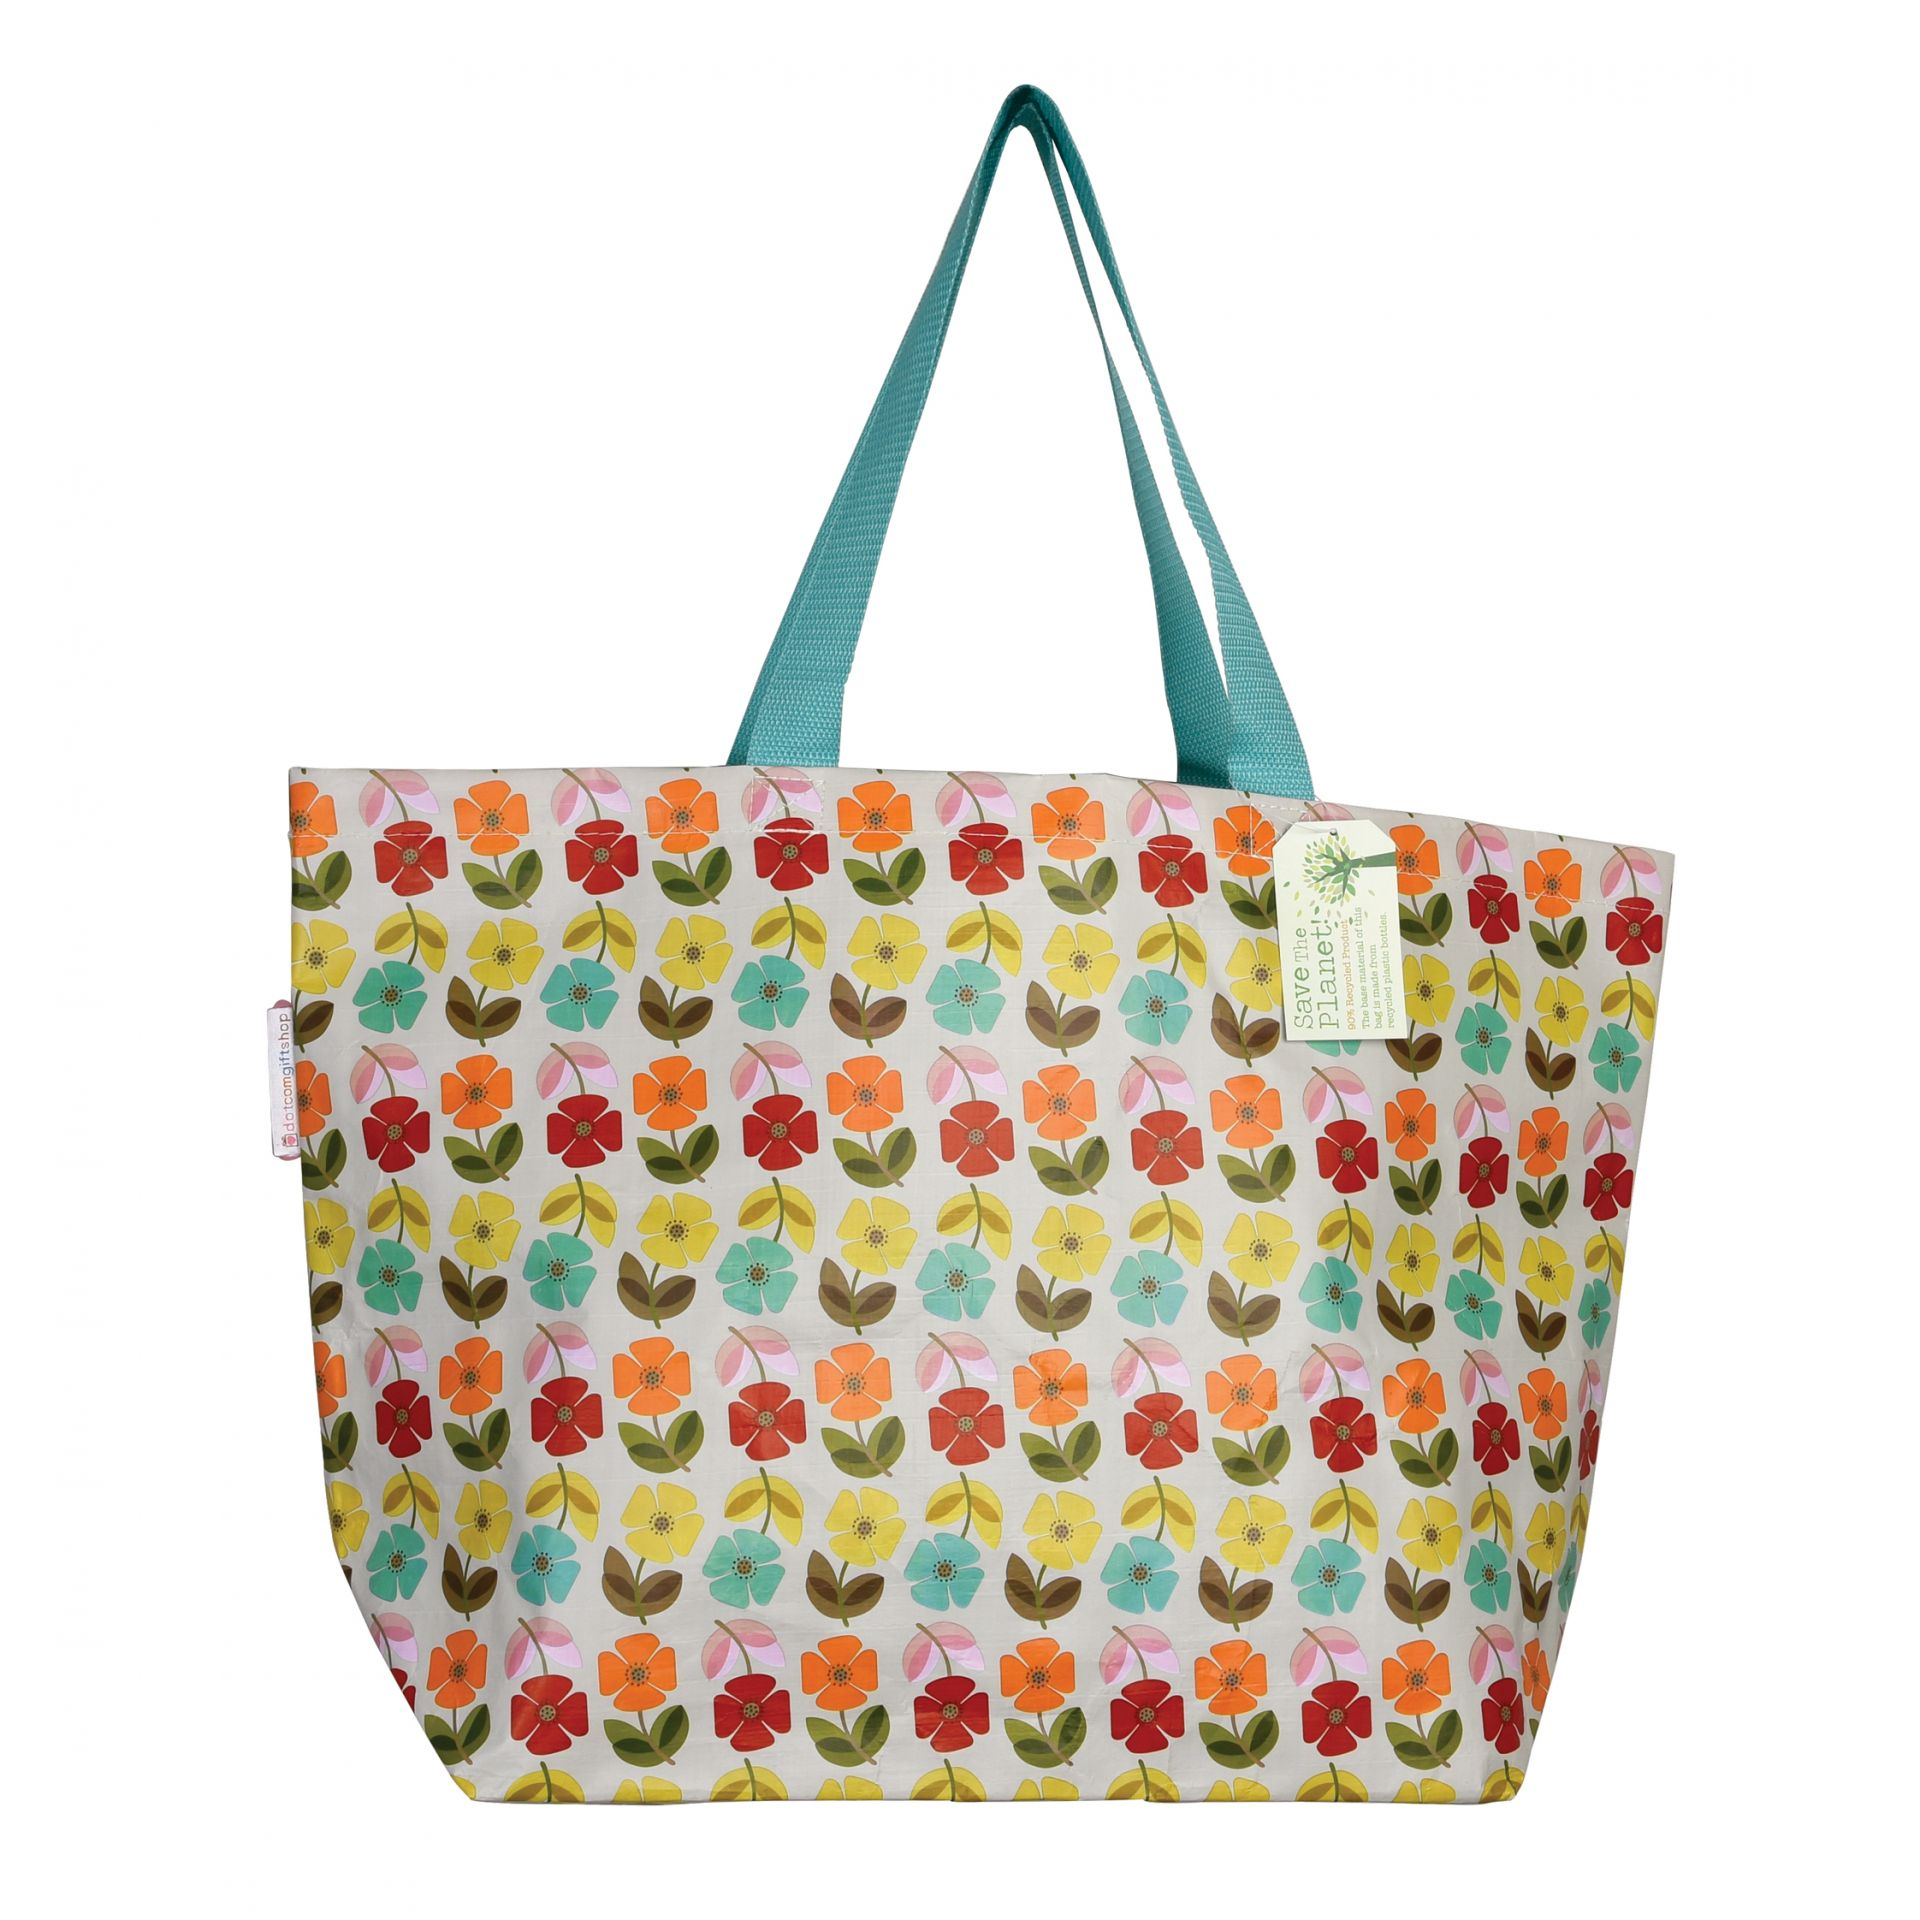 content/eco-gifts/large-flower-print-eco-shopping-bag.jpg